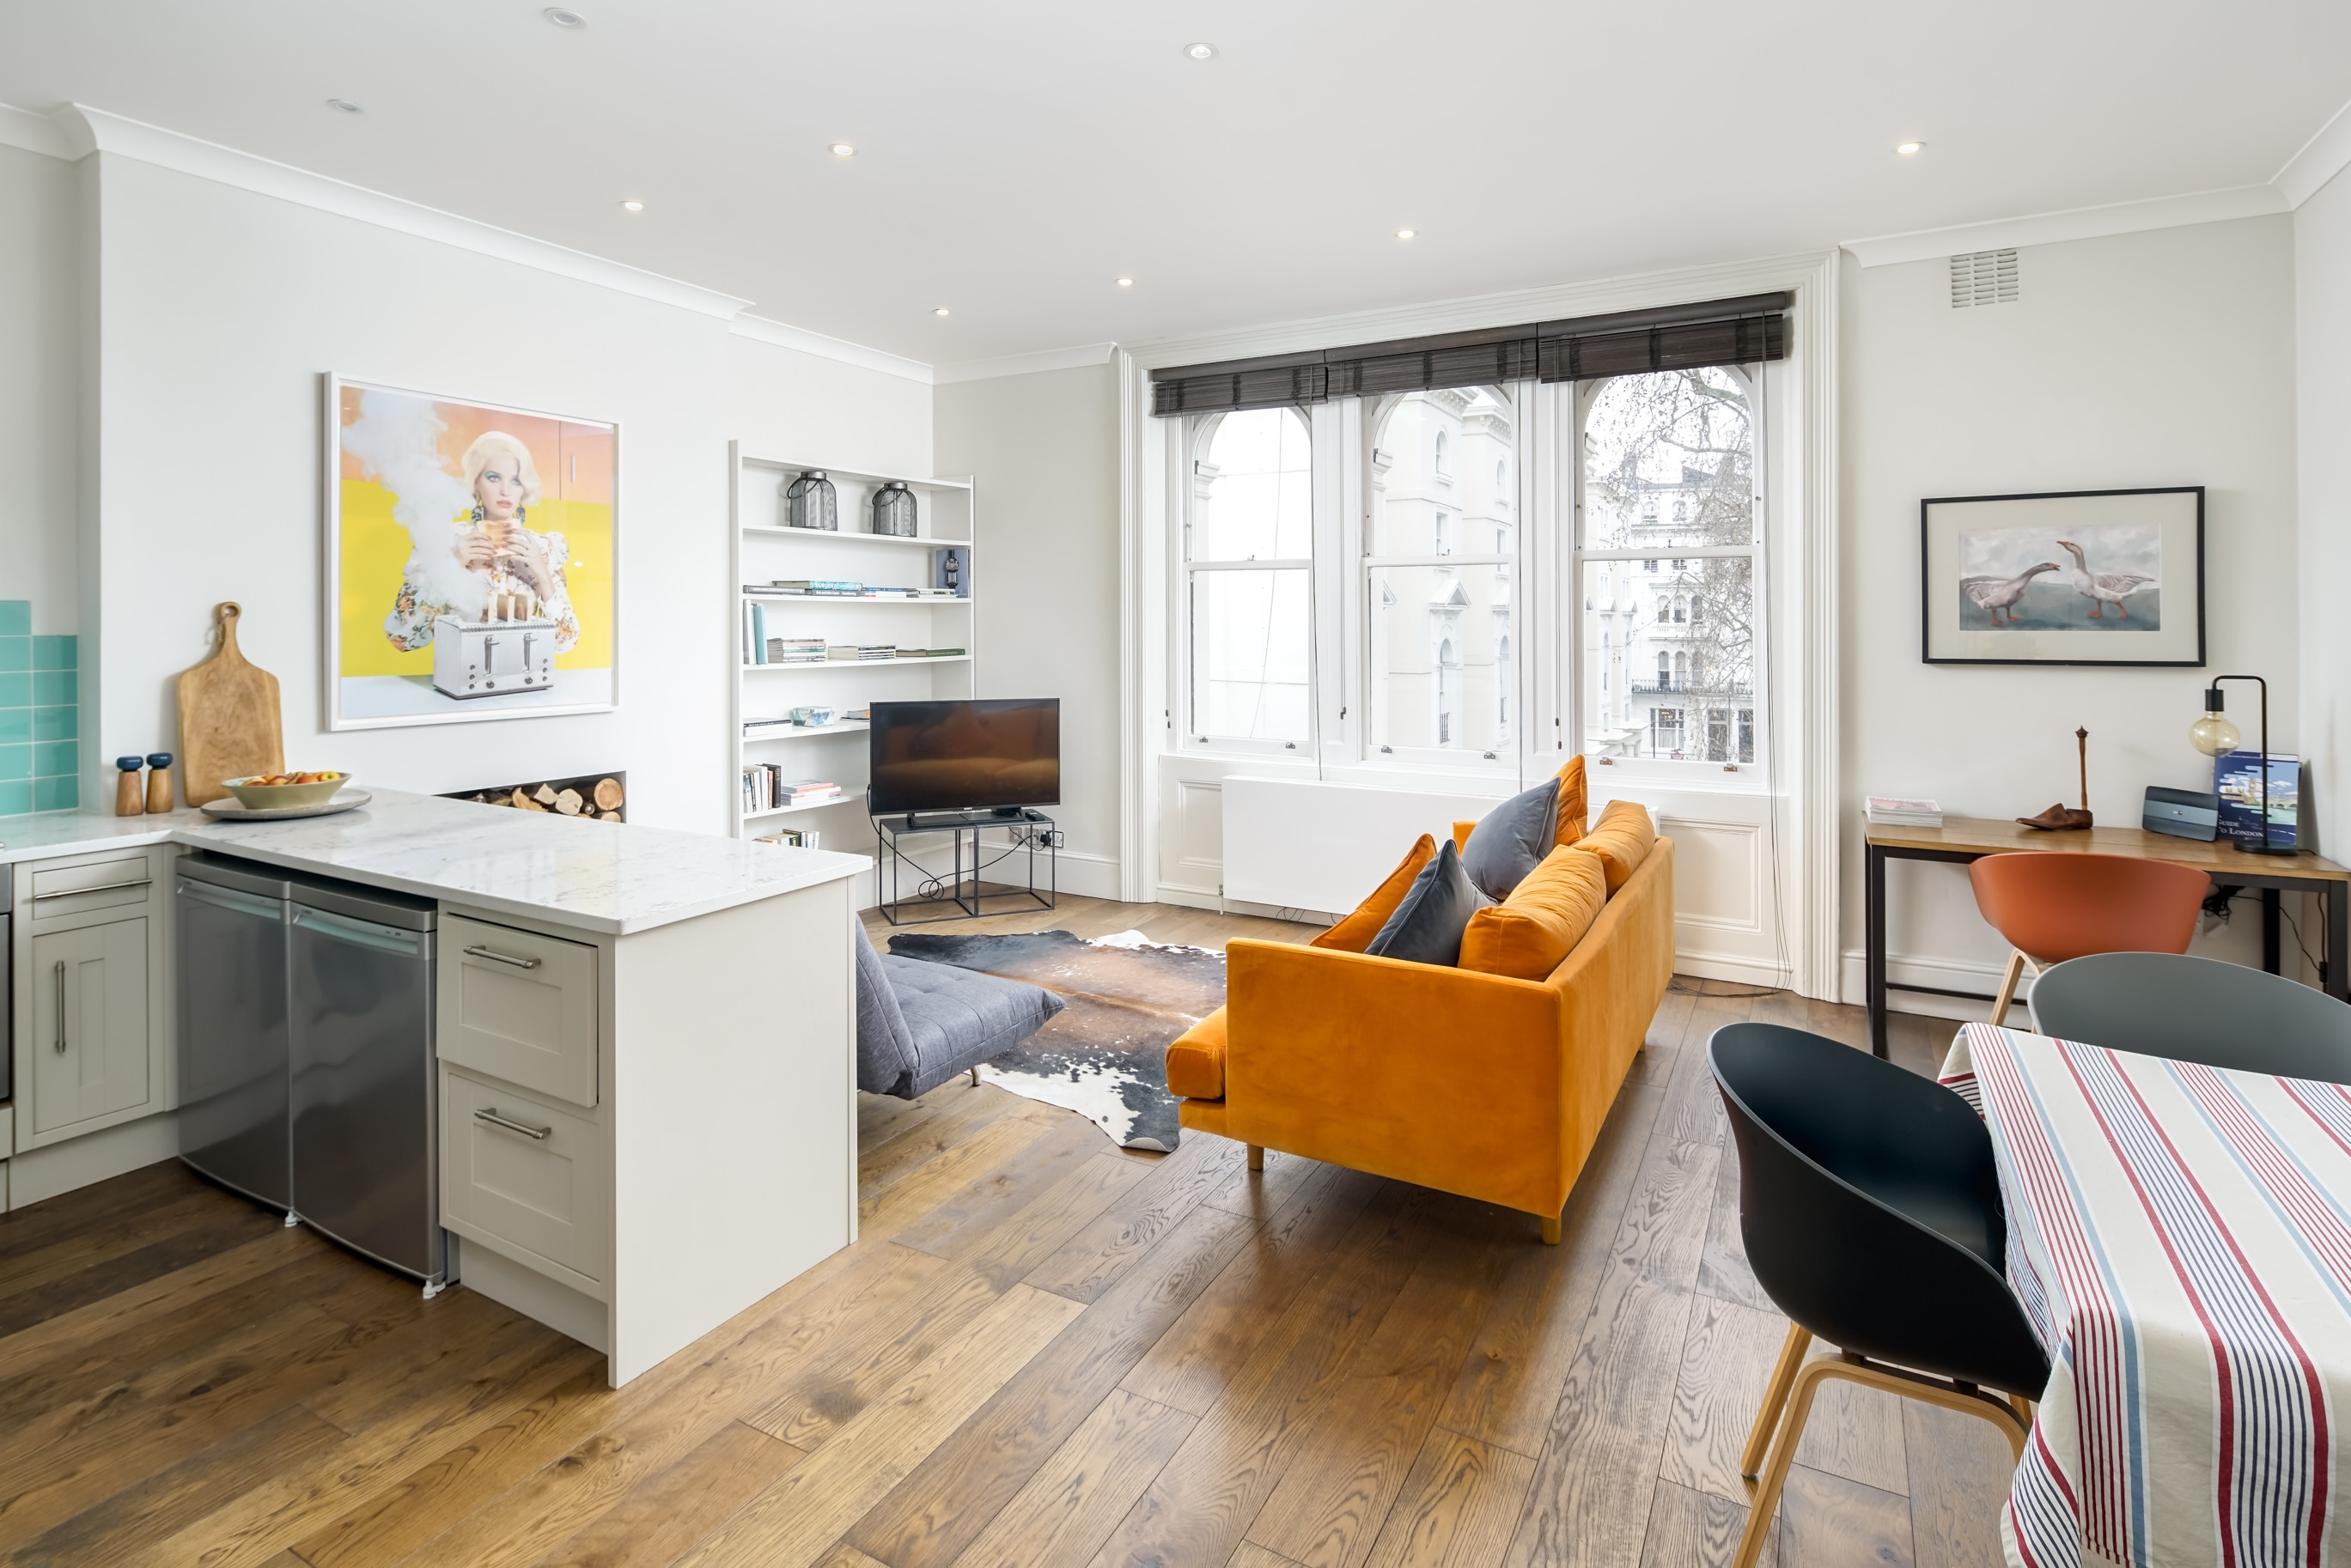 Property Image 1 - Light and Airy 1-bed in Leafy Square Near Paddington